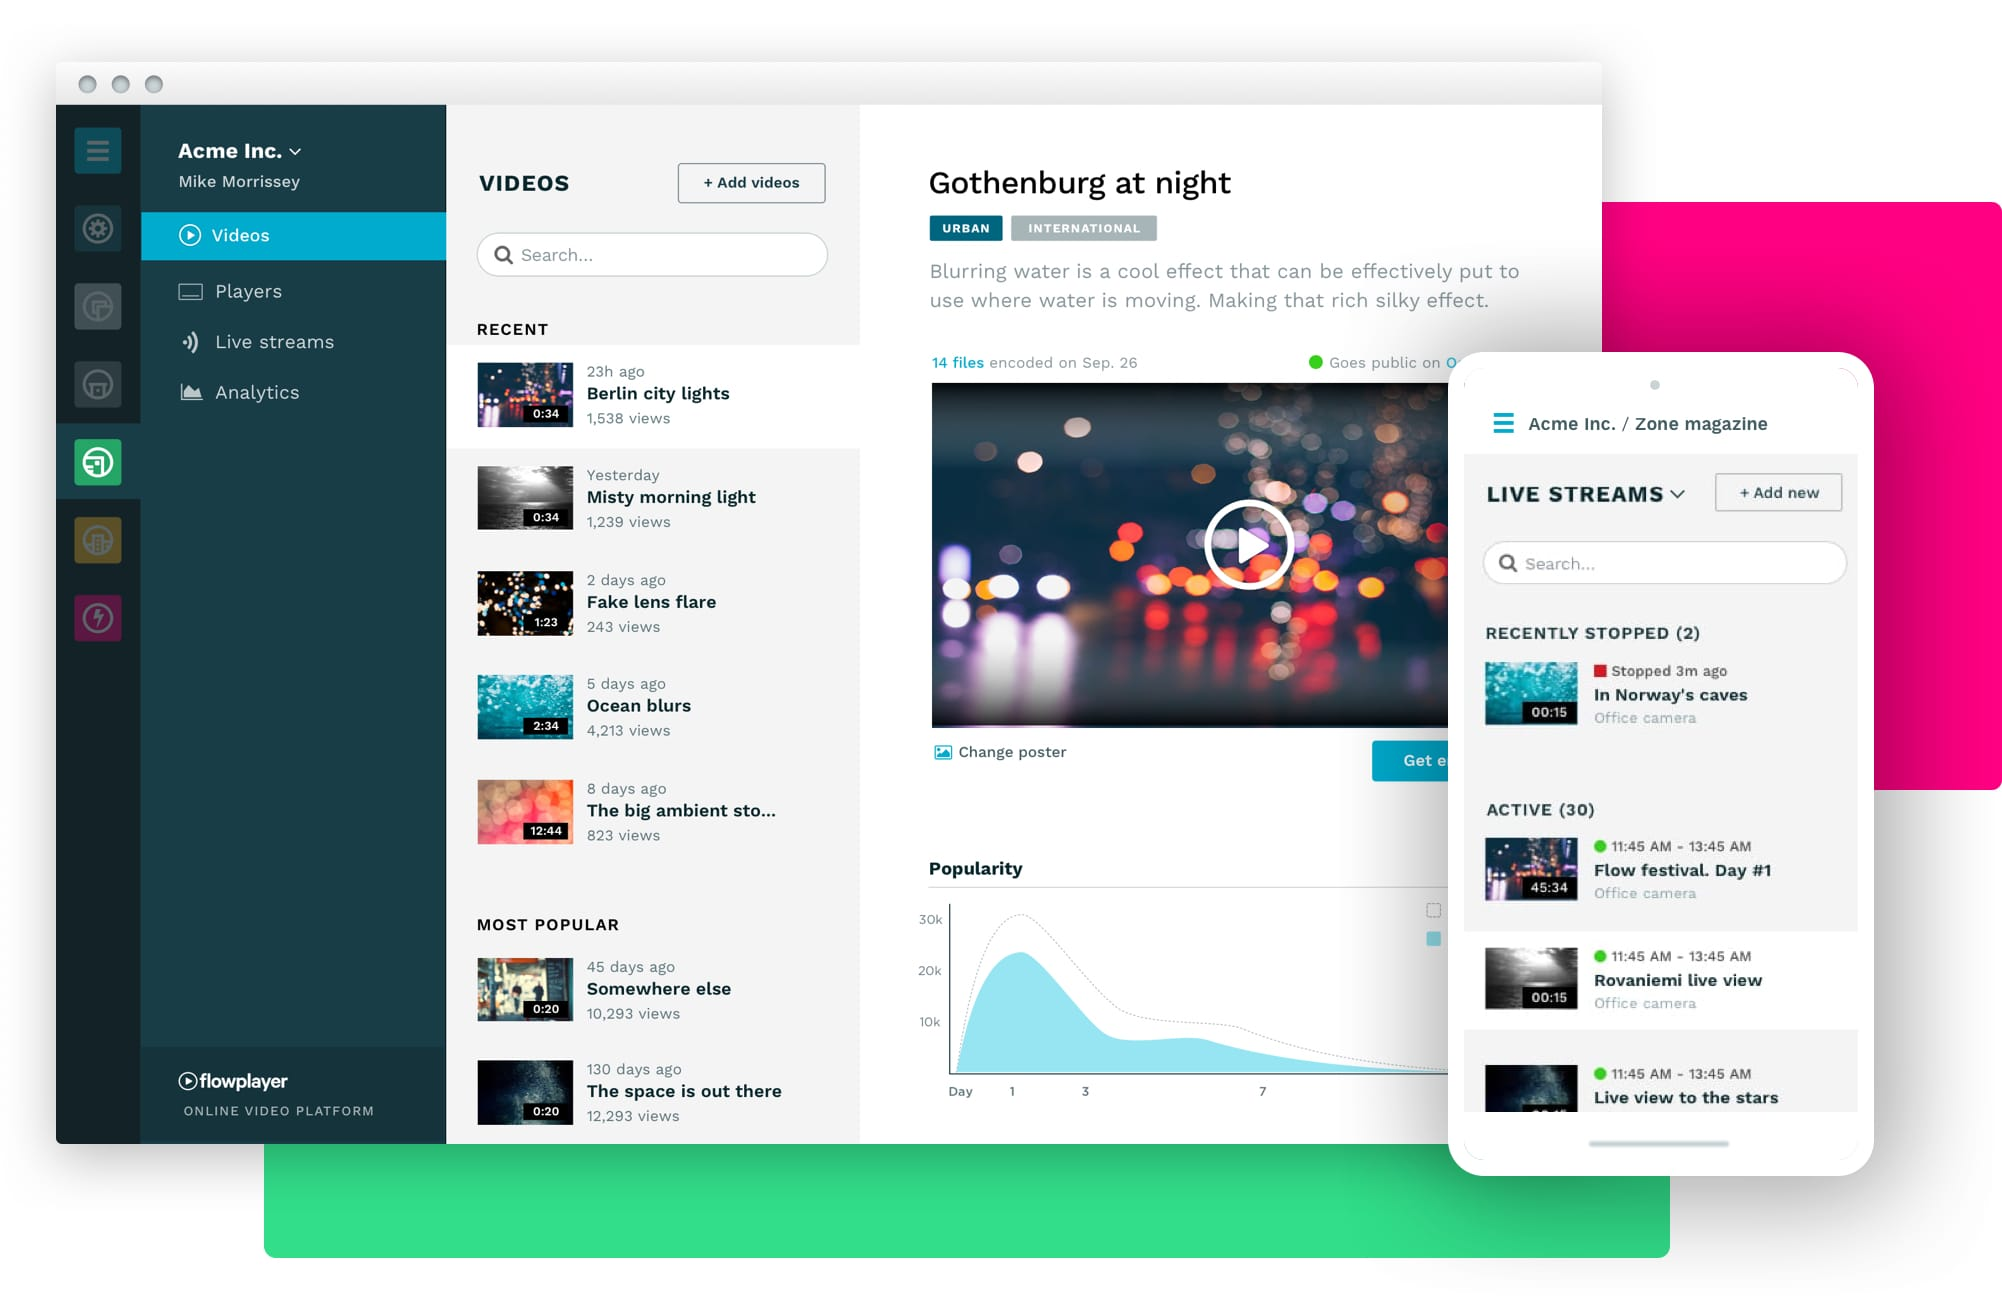 Flowplayer: the online video that works